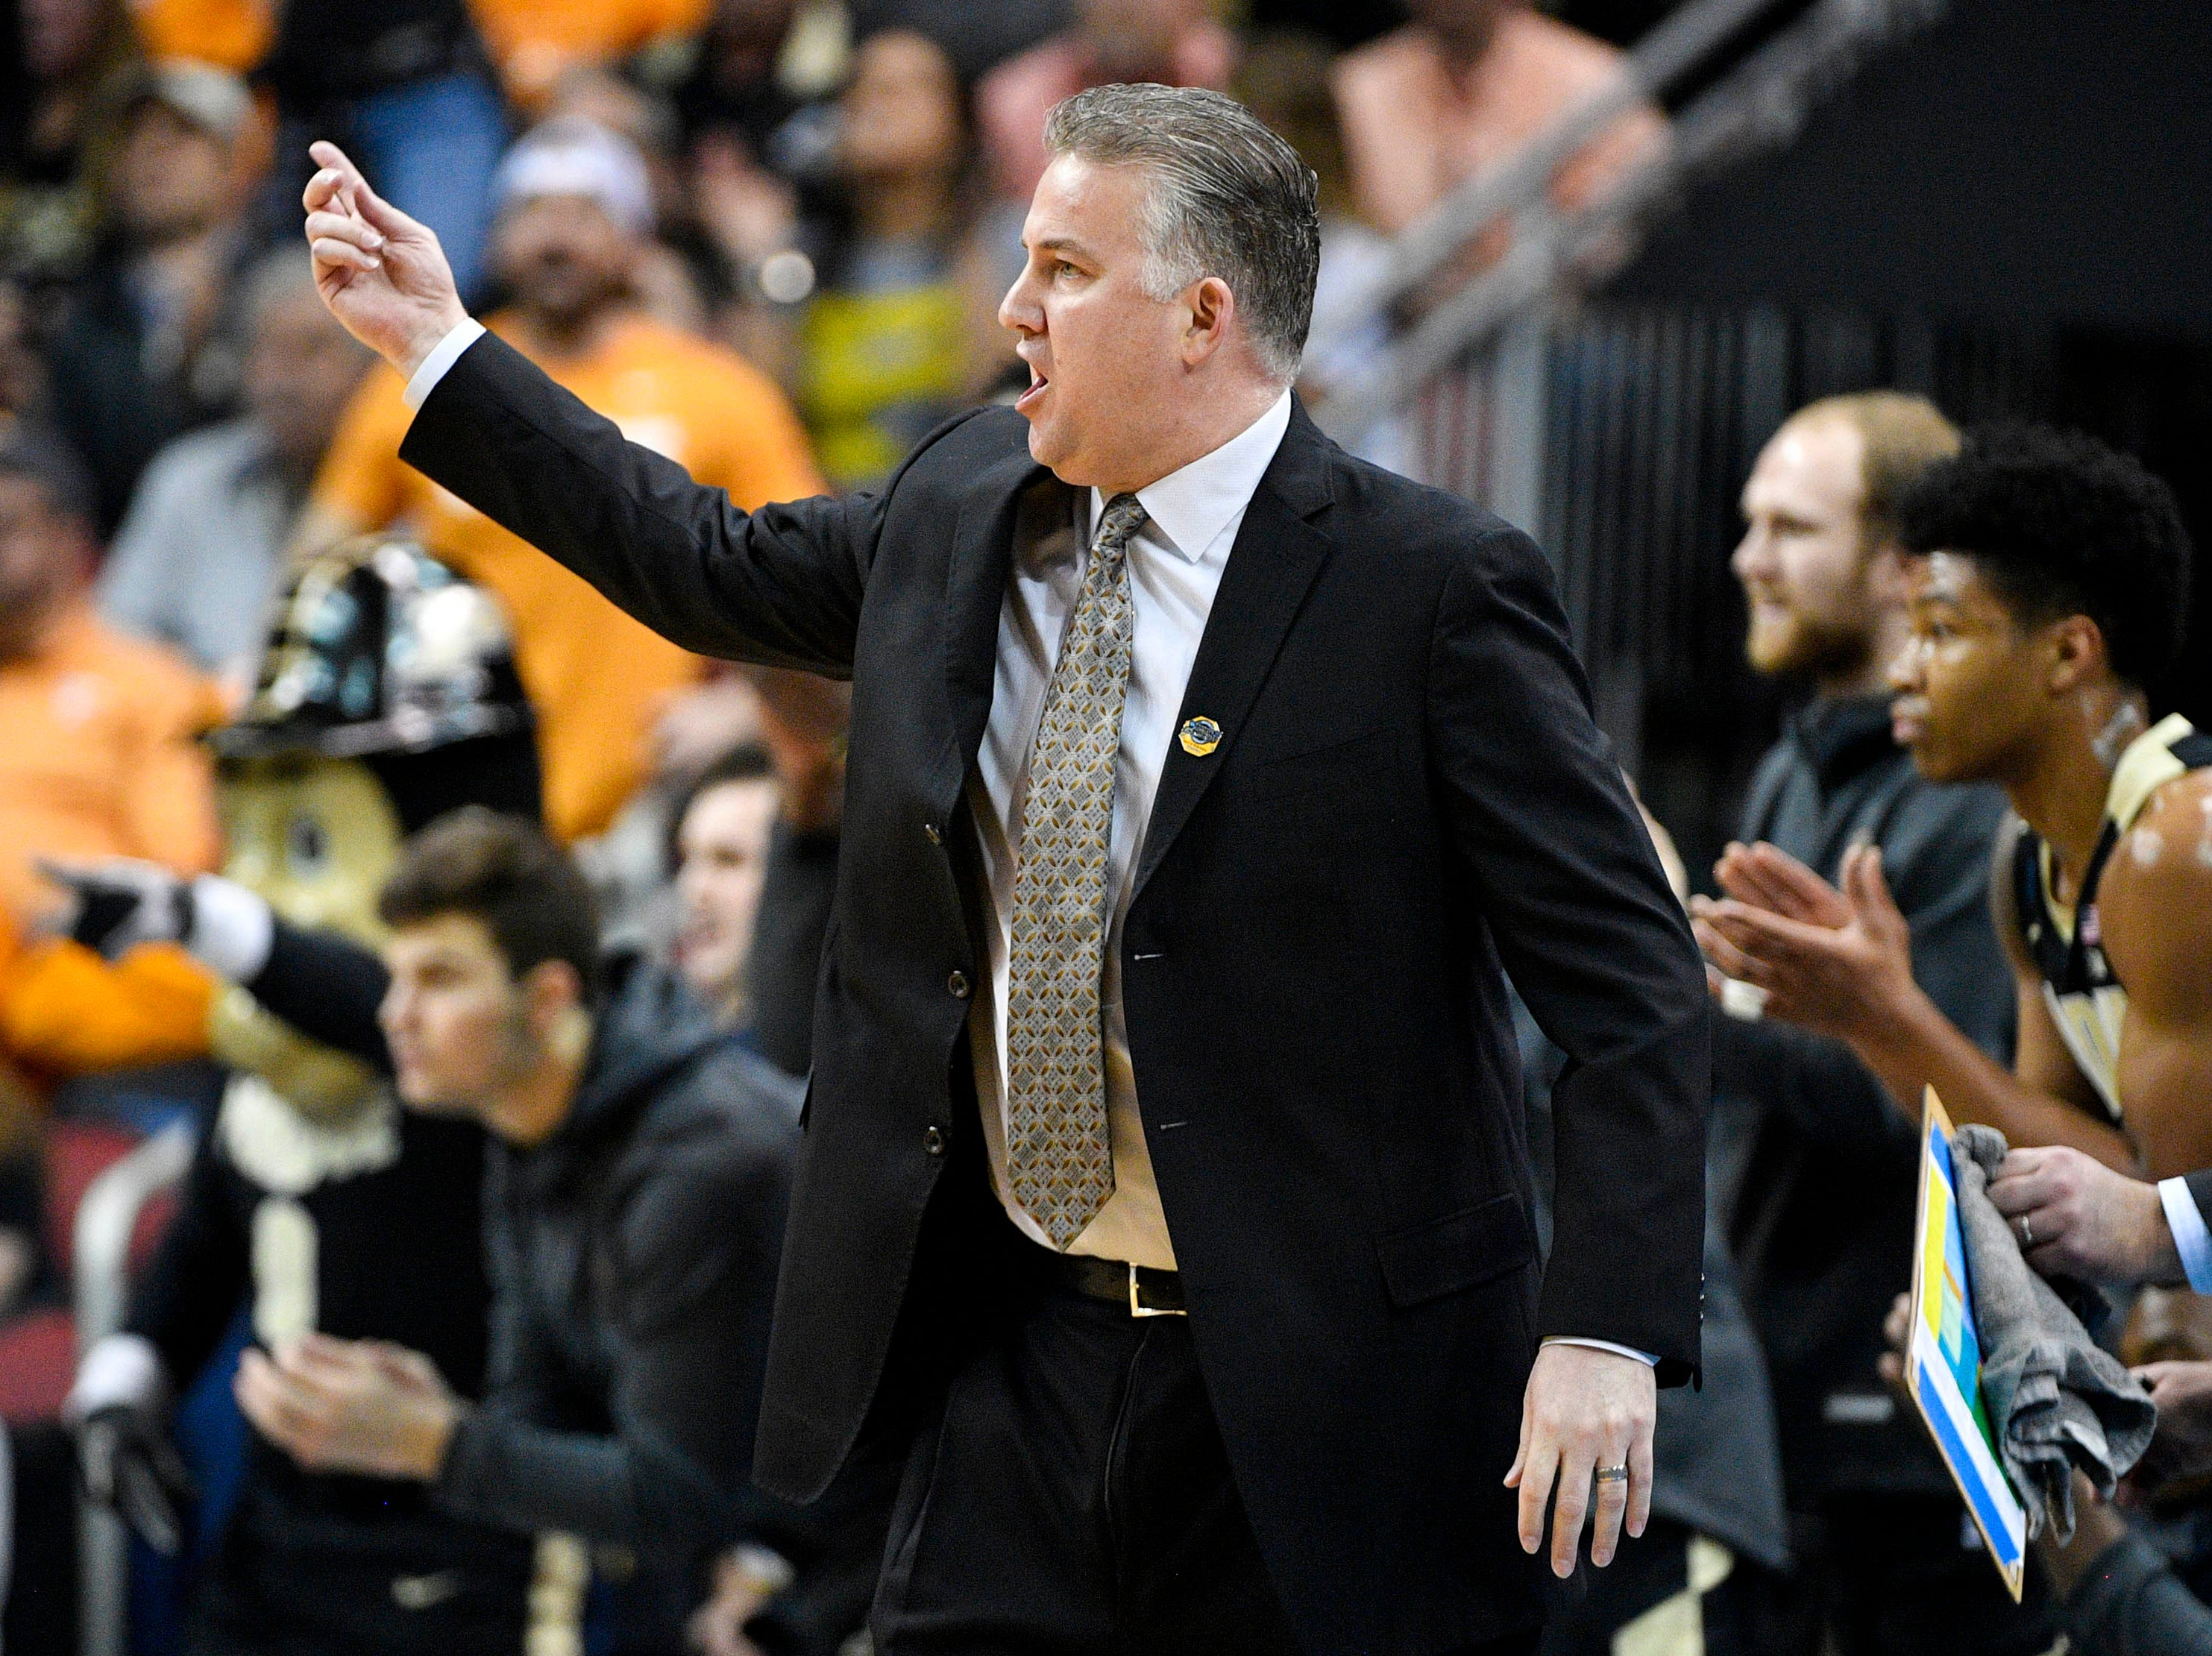 Mar 28, 2019; Louisville, KY, United States; Purdue Boilermakers head coach Matt Painter reacts during the first half against the Tennessee Volunteers in the semifinals of the south regional of the 2019 NCAA Tournament at KFC Yum Center. Mandatory Credit: Jamie Rhodes-USA TODAY Sports